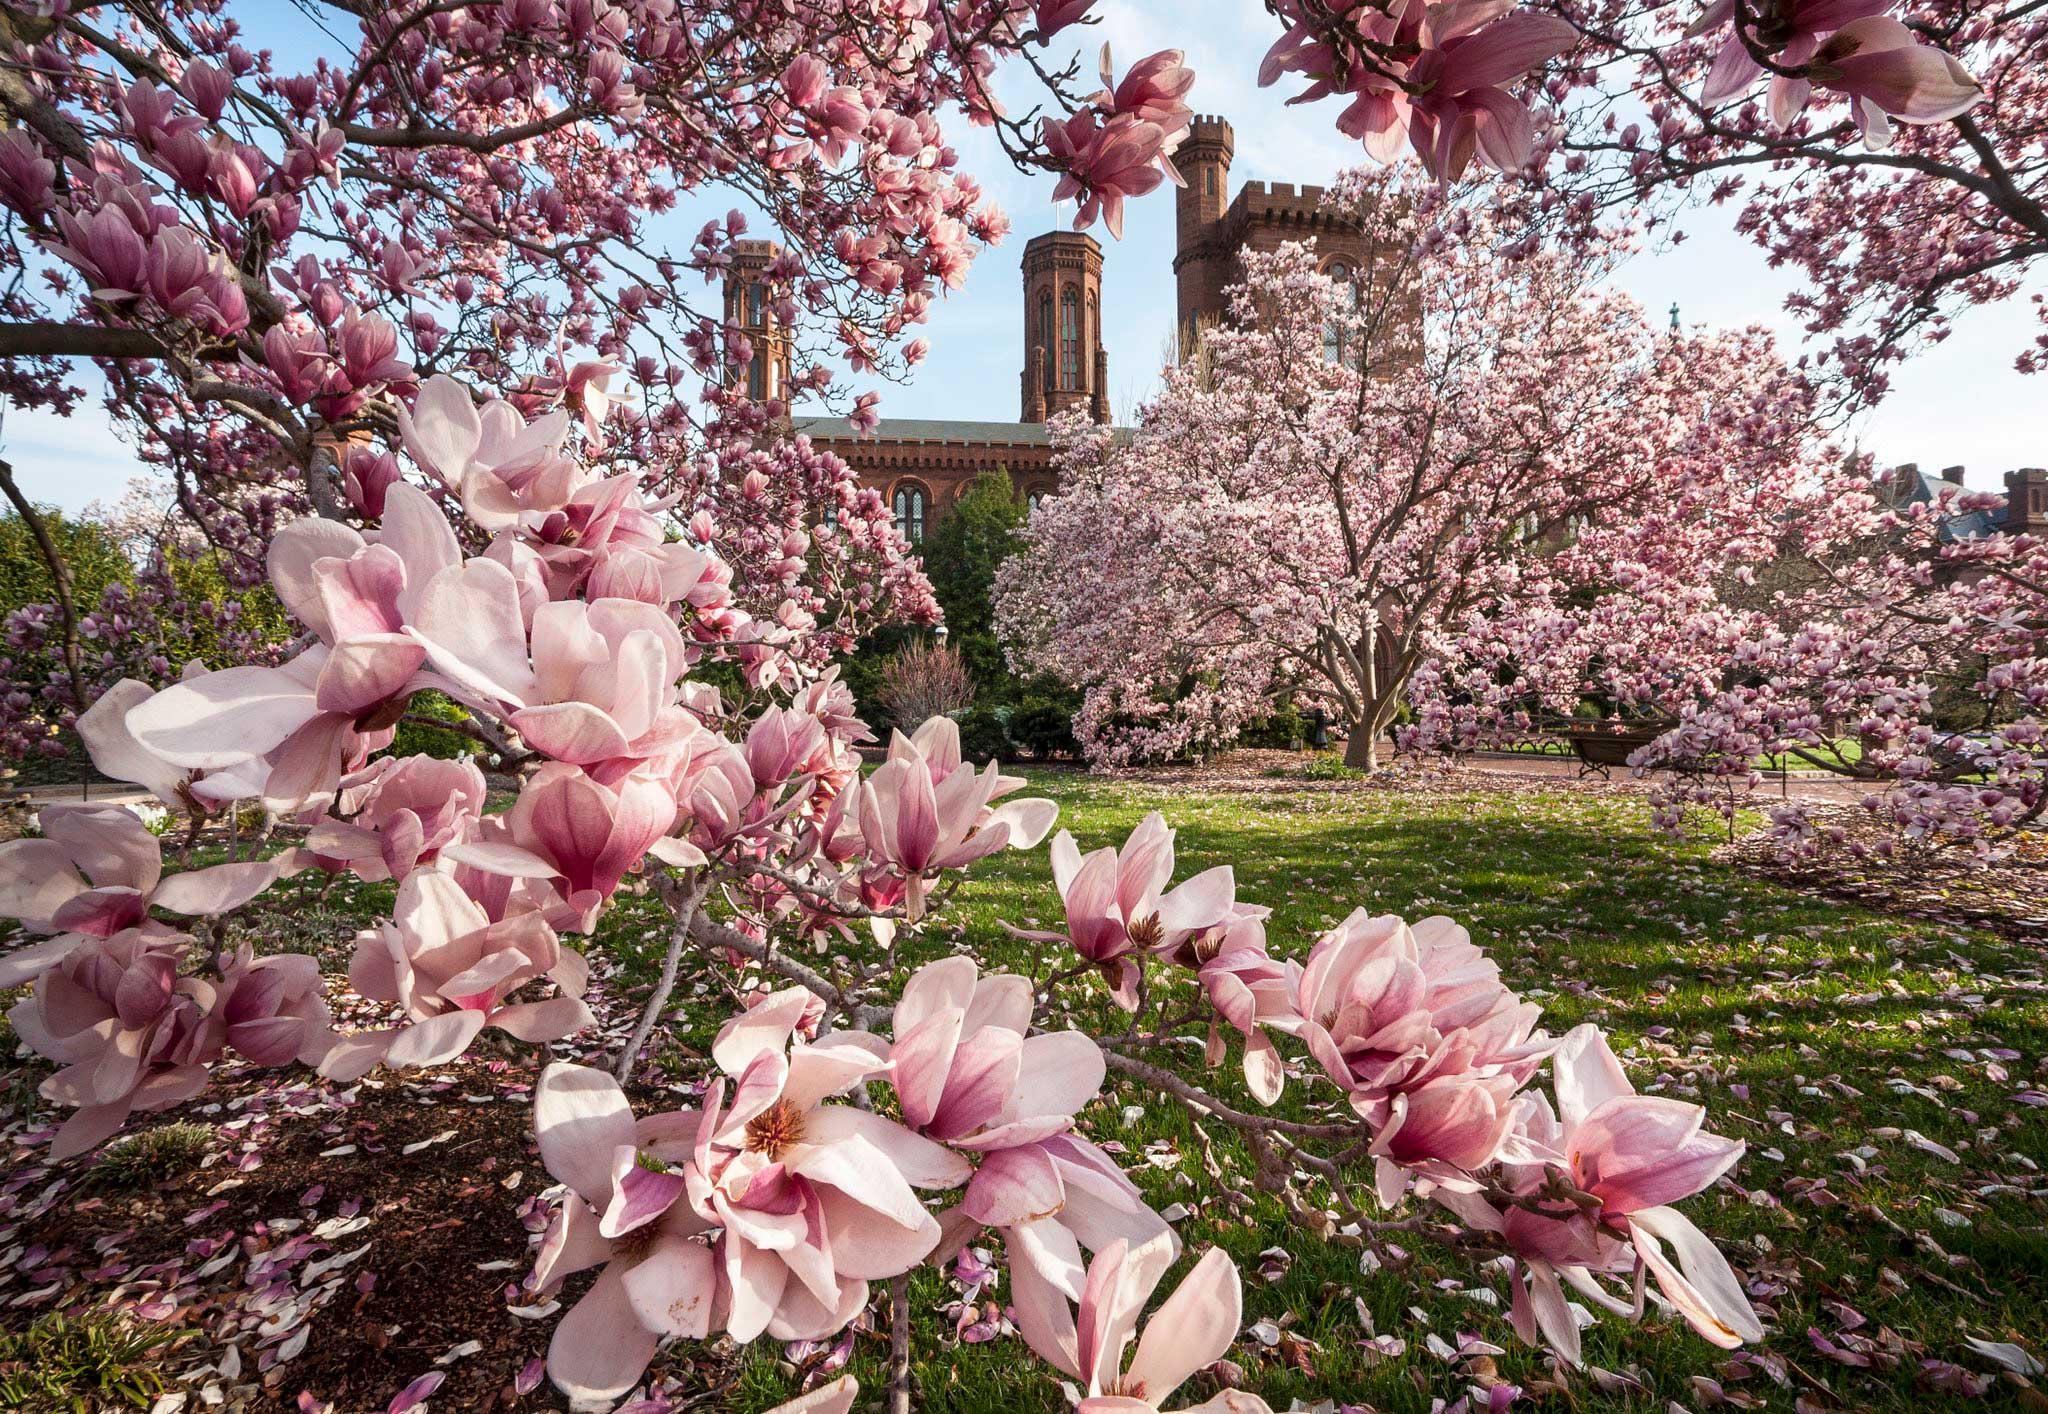 Saucer magnolia trees with pink flowers in front of the Smithsonian Castle building.